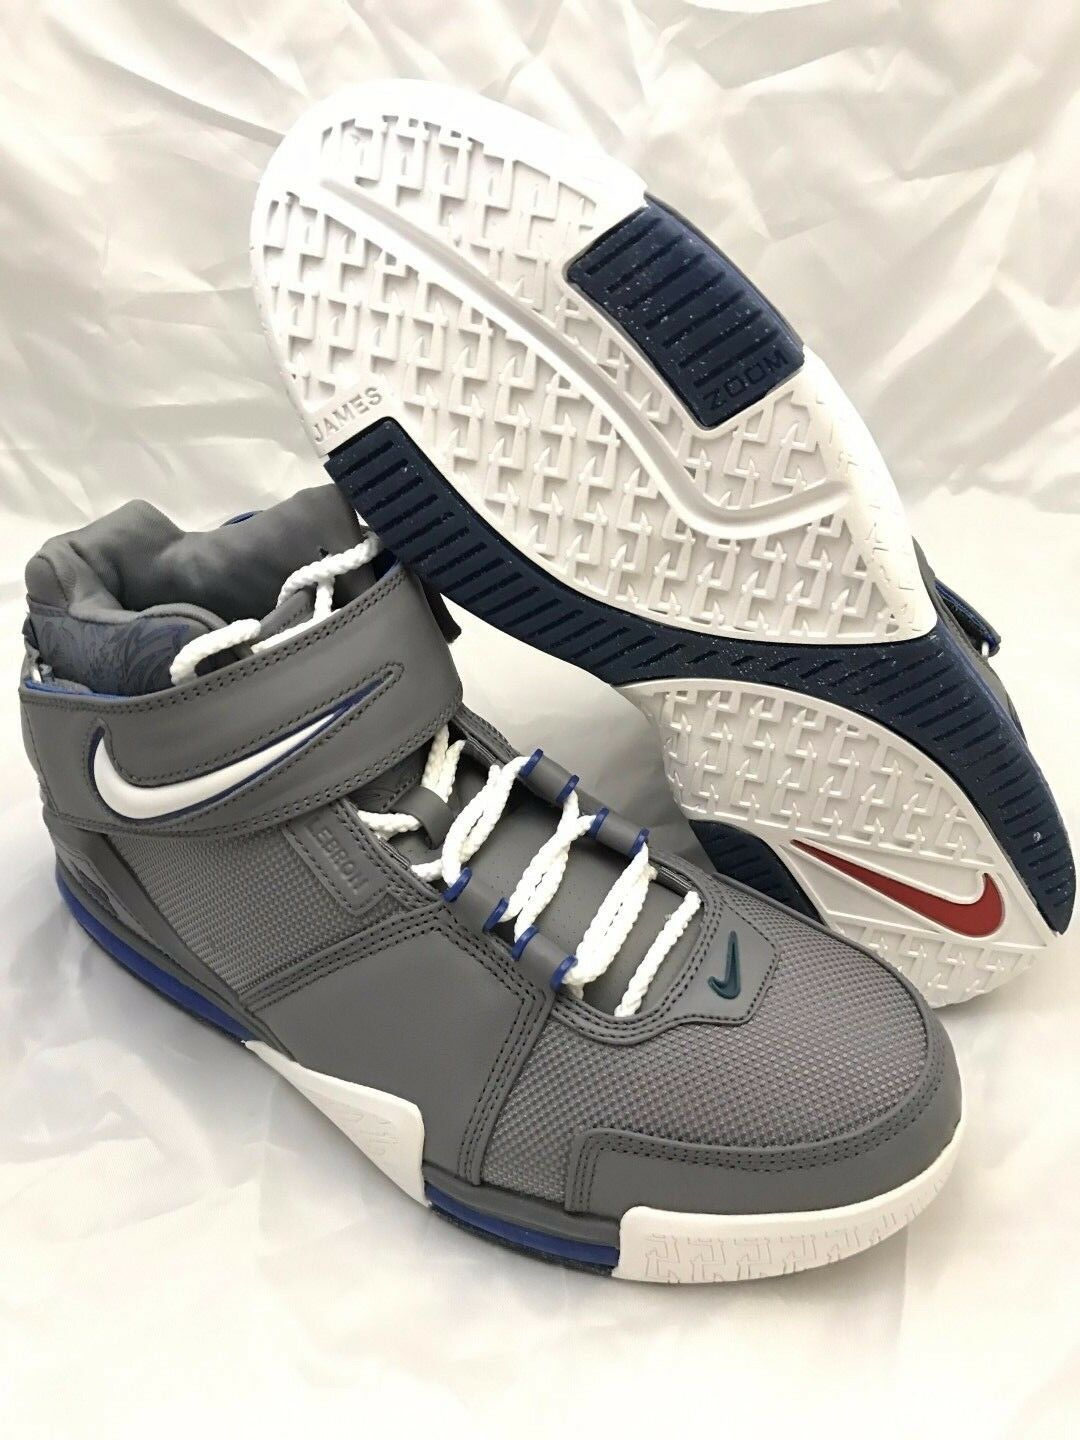 NEW DS Nike Zoom LeBron II Price reduction Cool Grey Royal 2018 Comfortable The latest discount shoes for men and women